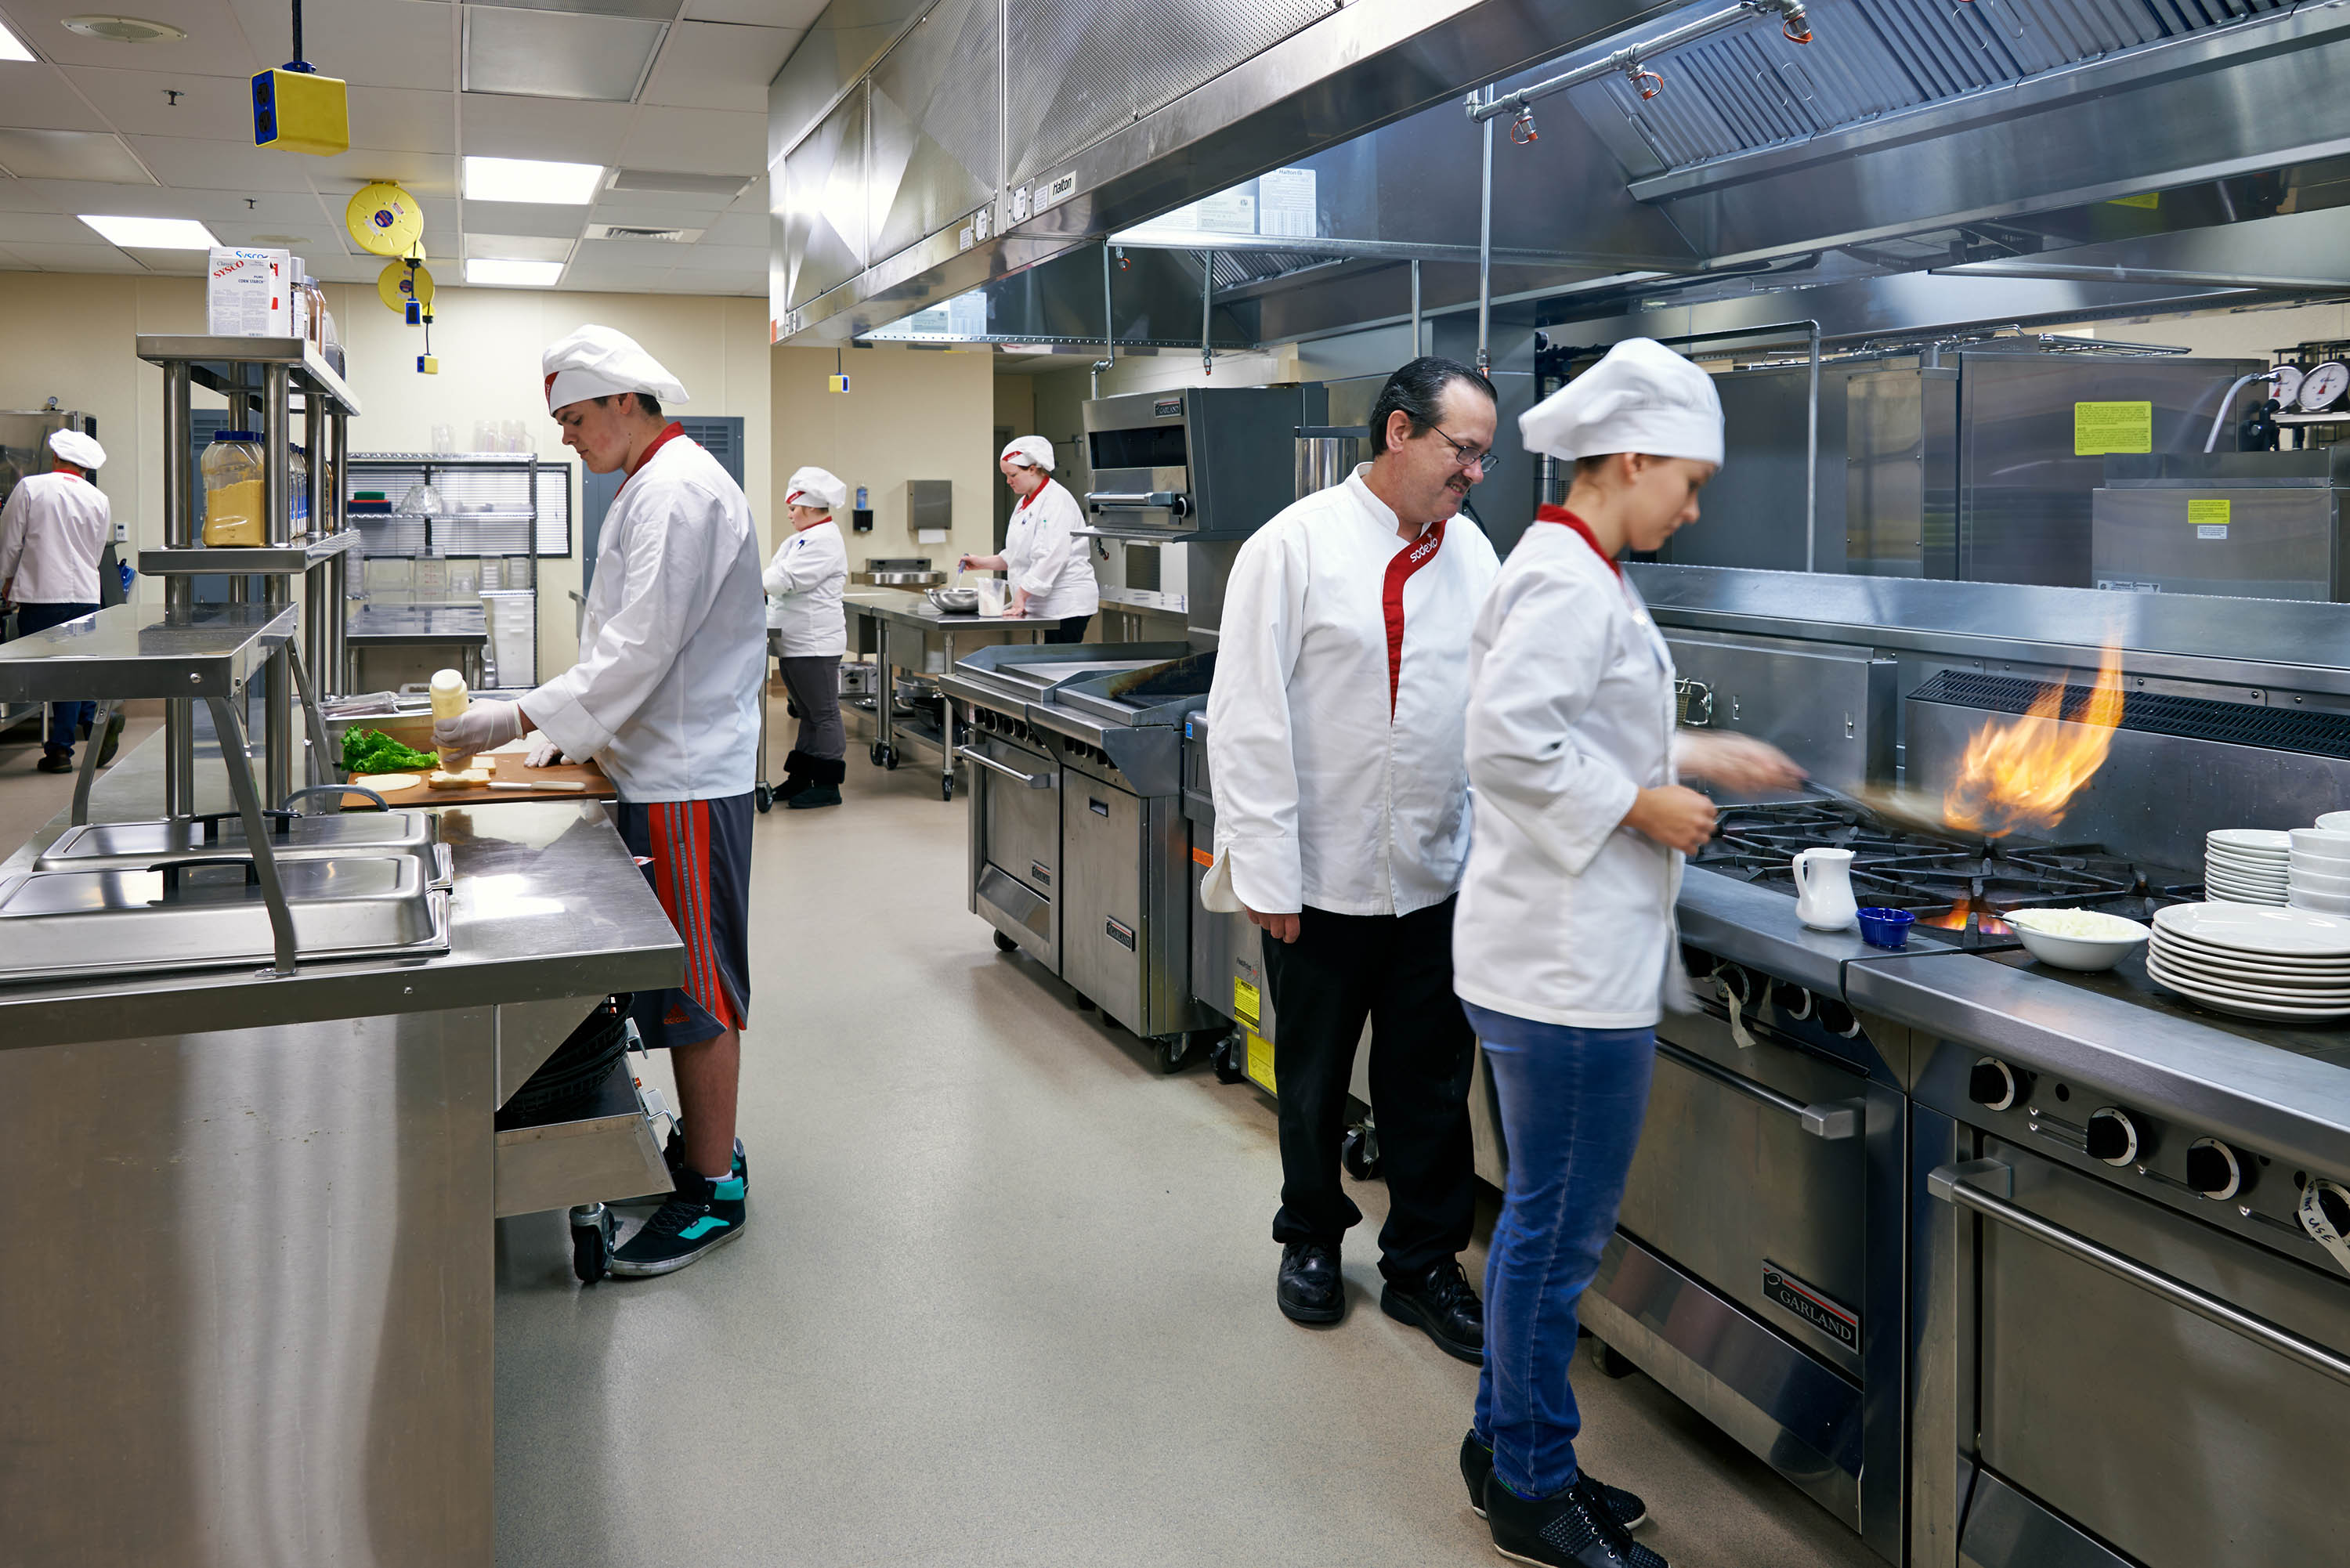 A teacher and students learning in the culinary kitchen.